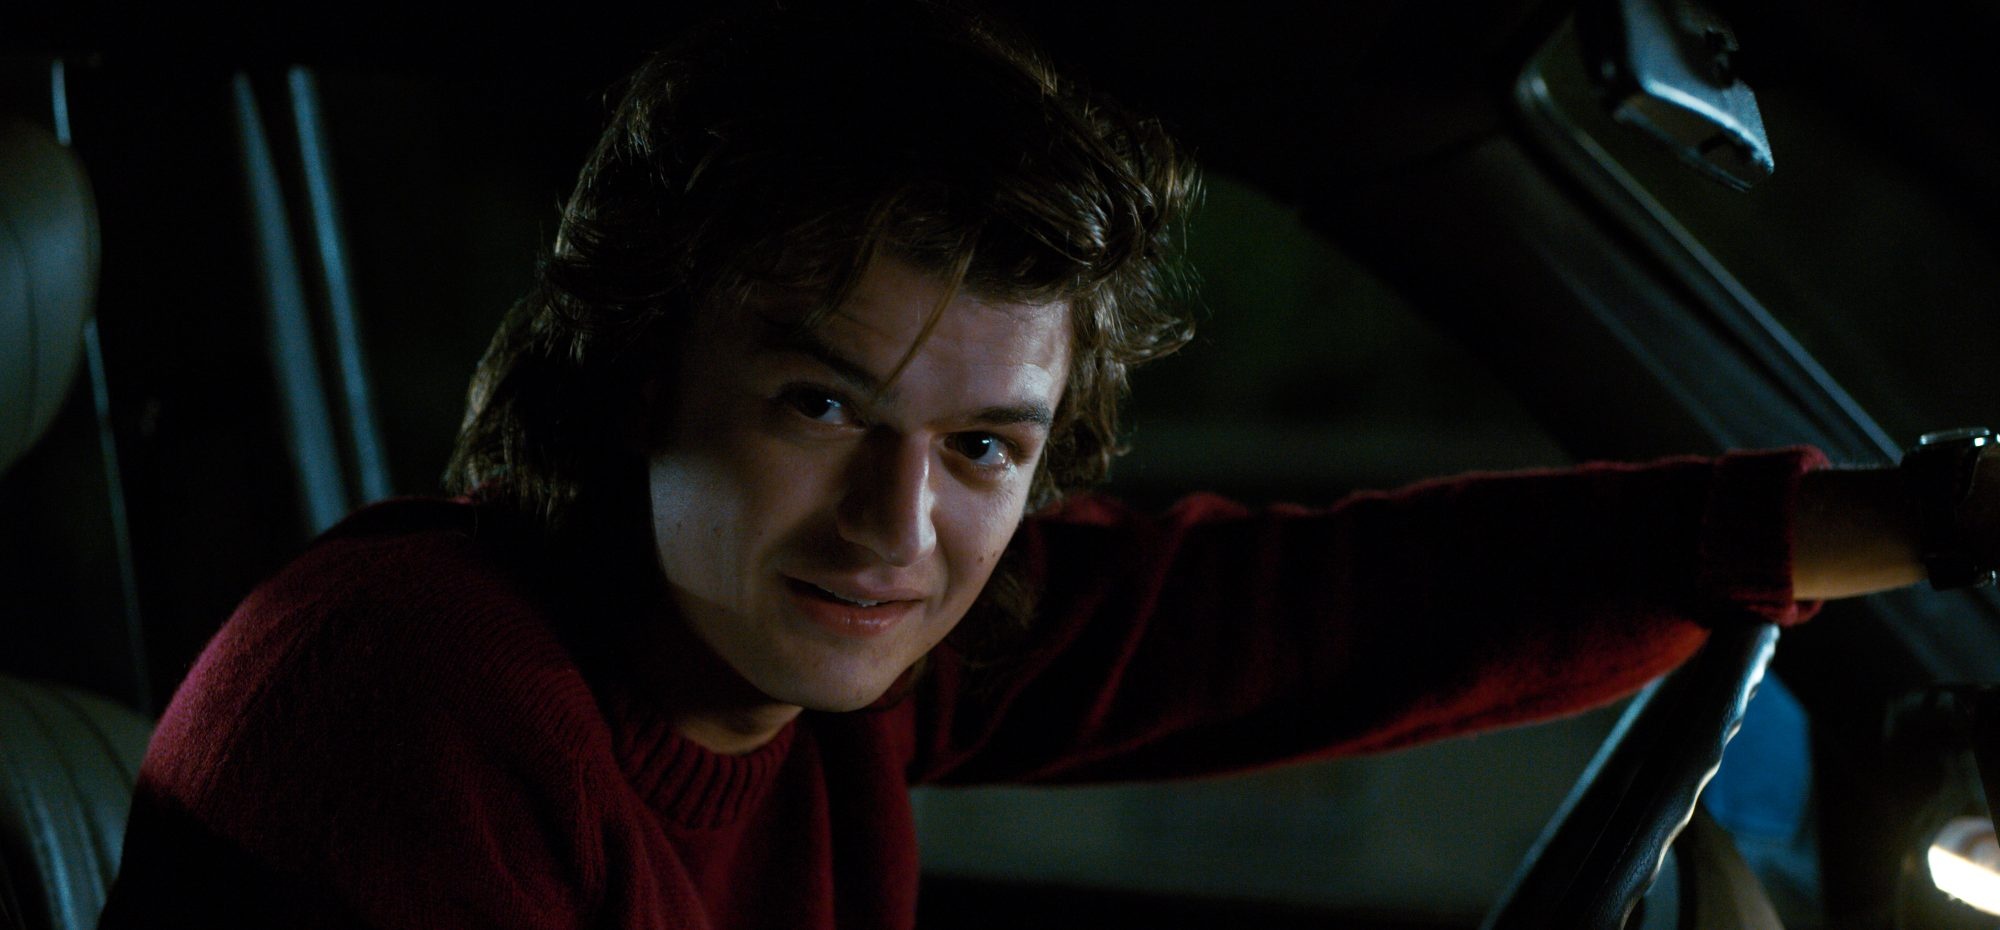 Joe Keery Stranger Things